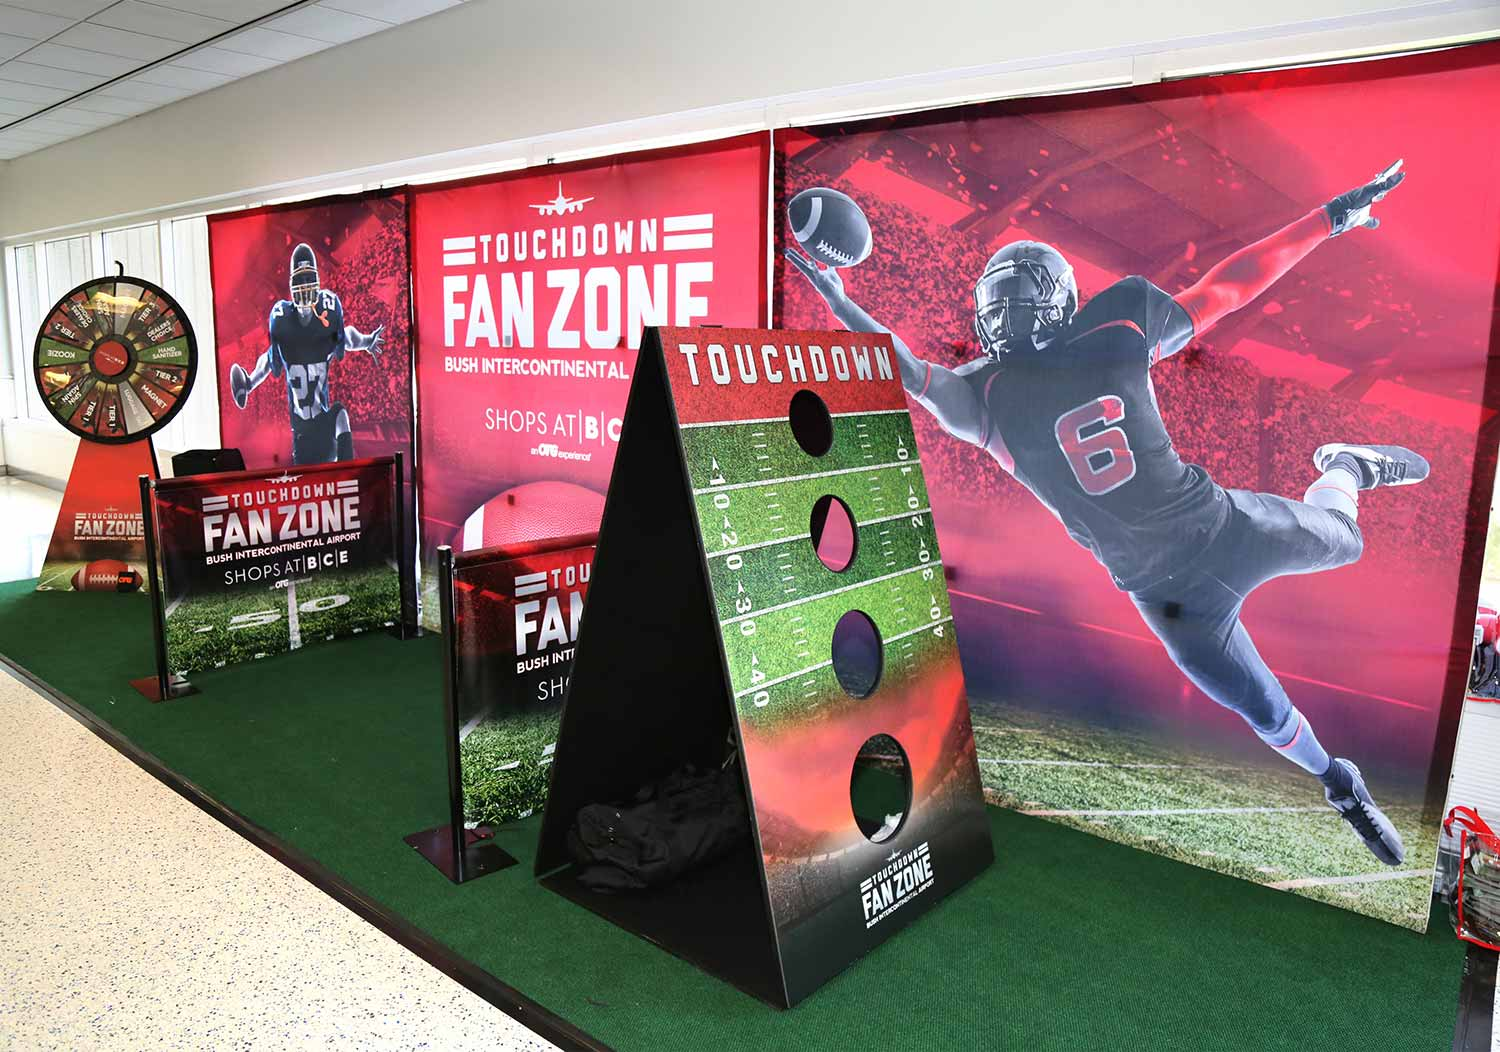 Design of booth and games for Super Bowl event in United Airlines terminals at IAH Houston, TX.